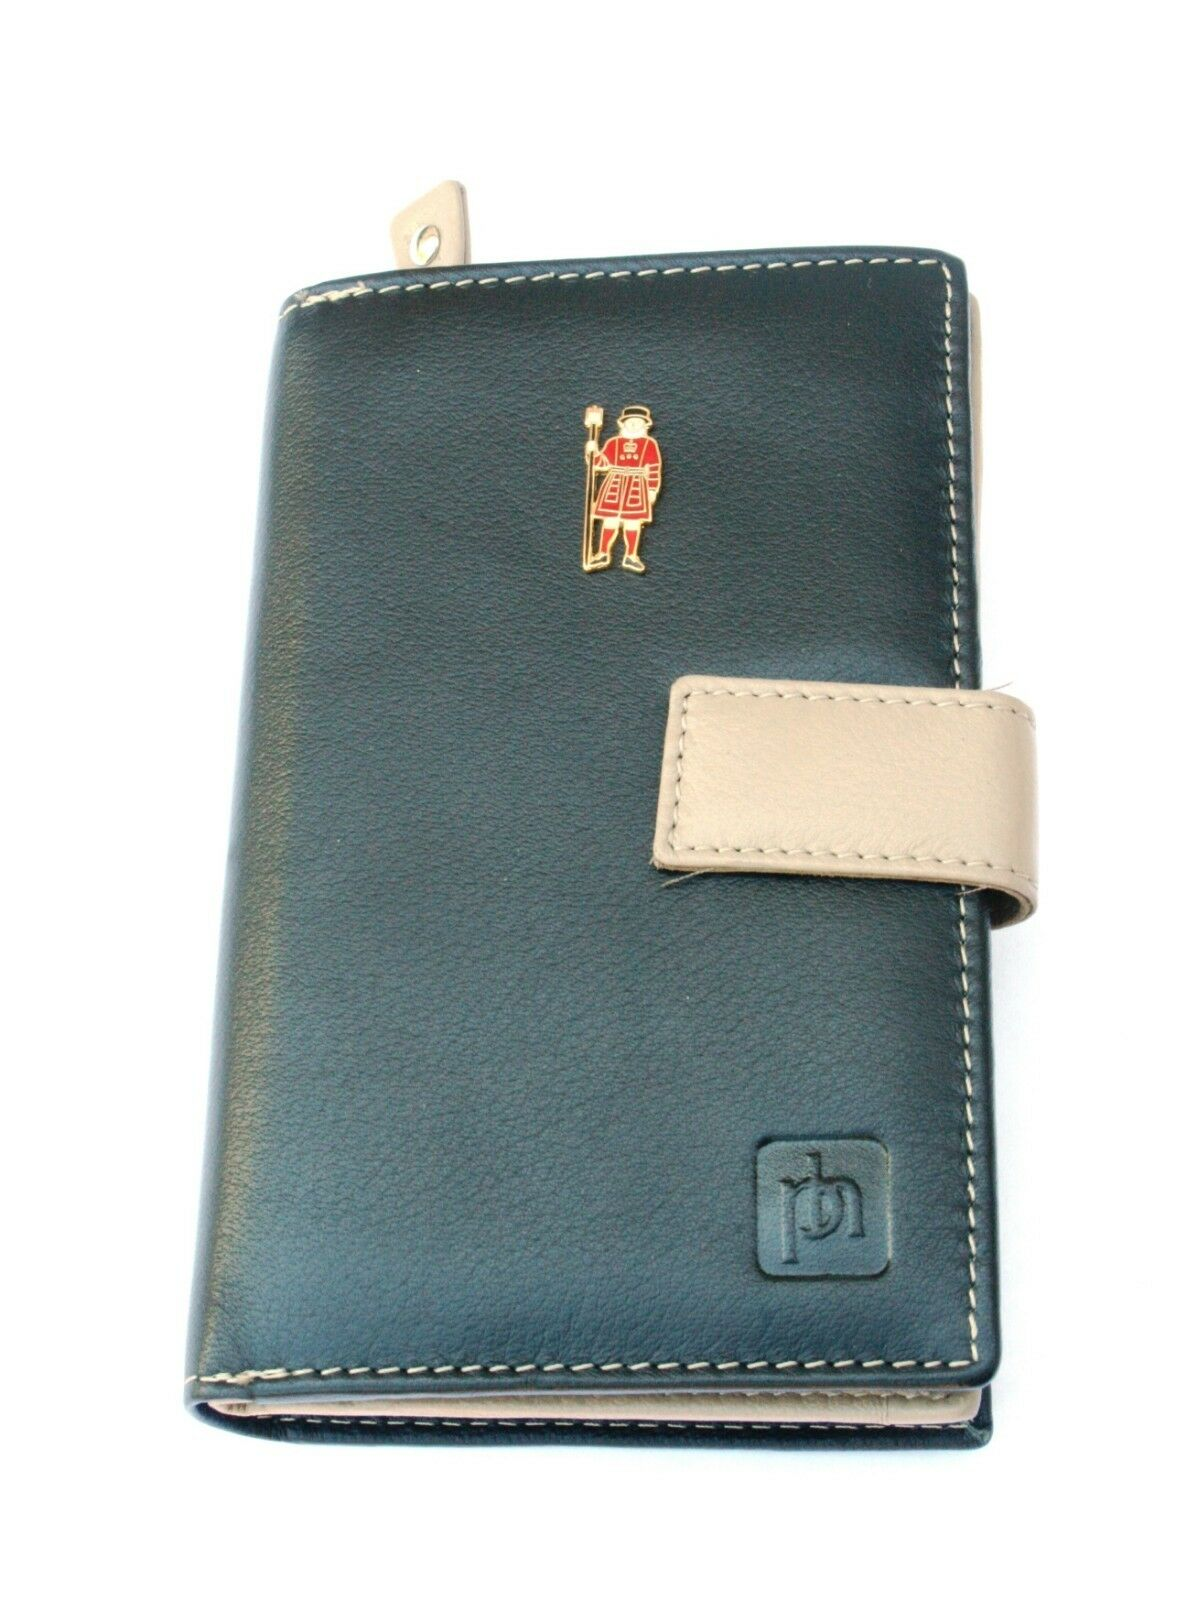 Beefeater Design Leather Purse with Zipped Pocket RFID Safe Women's Gift 031